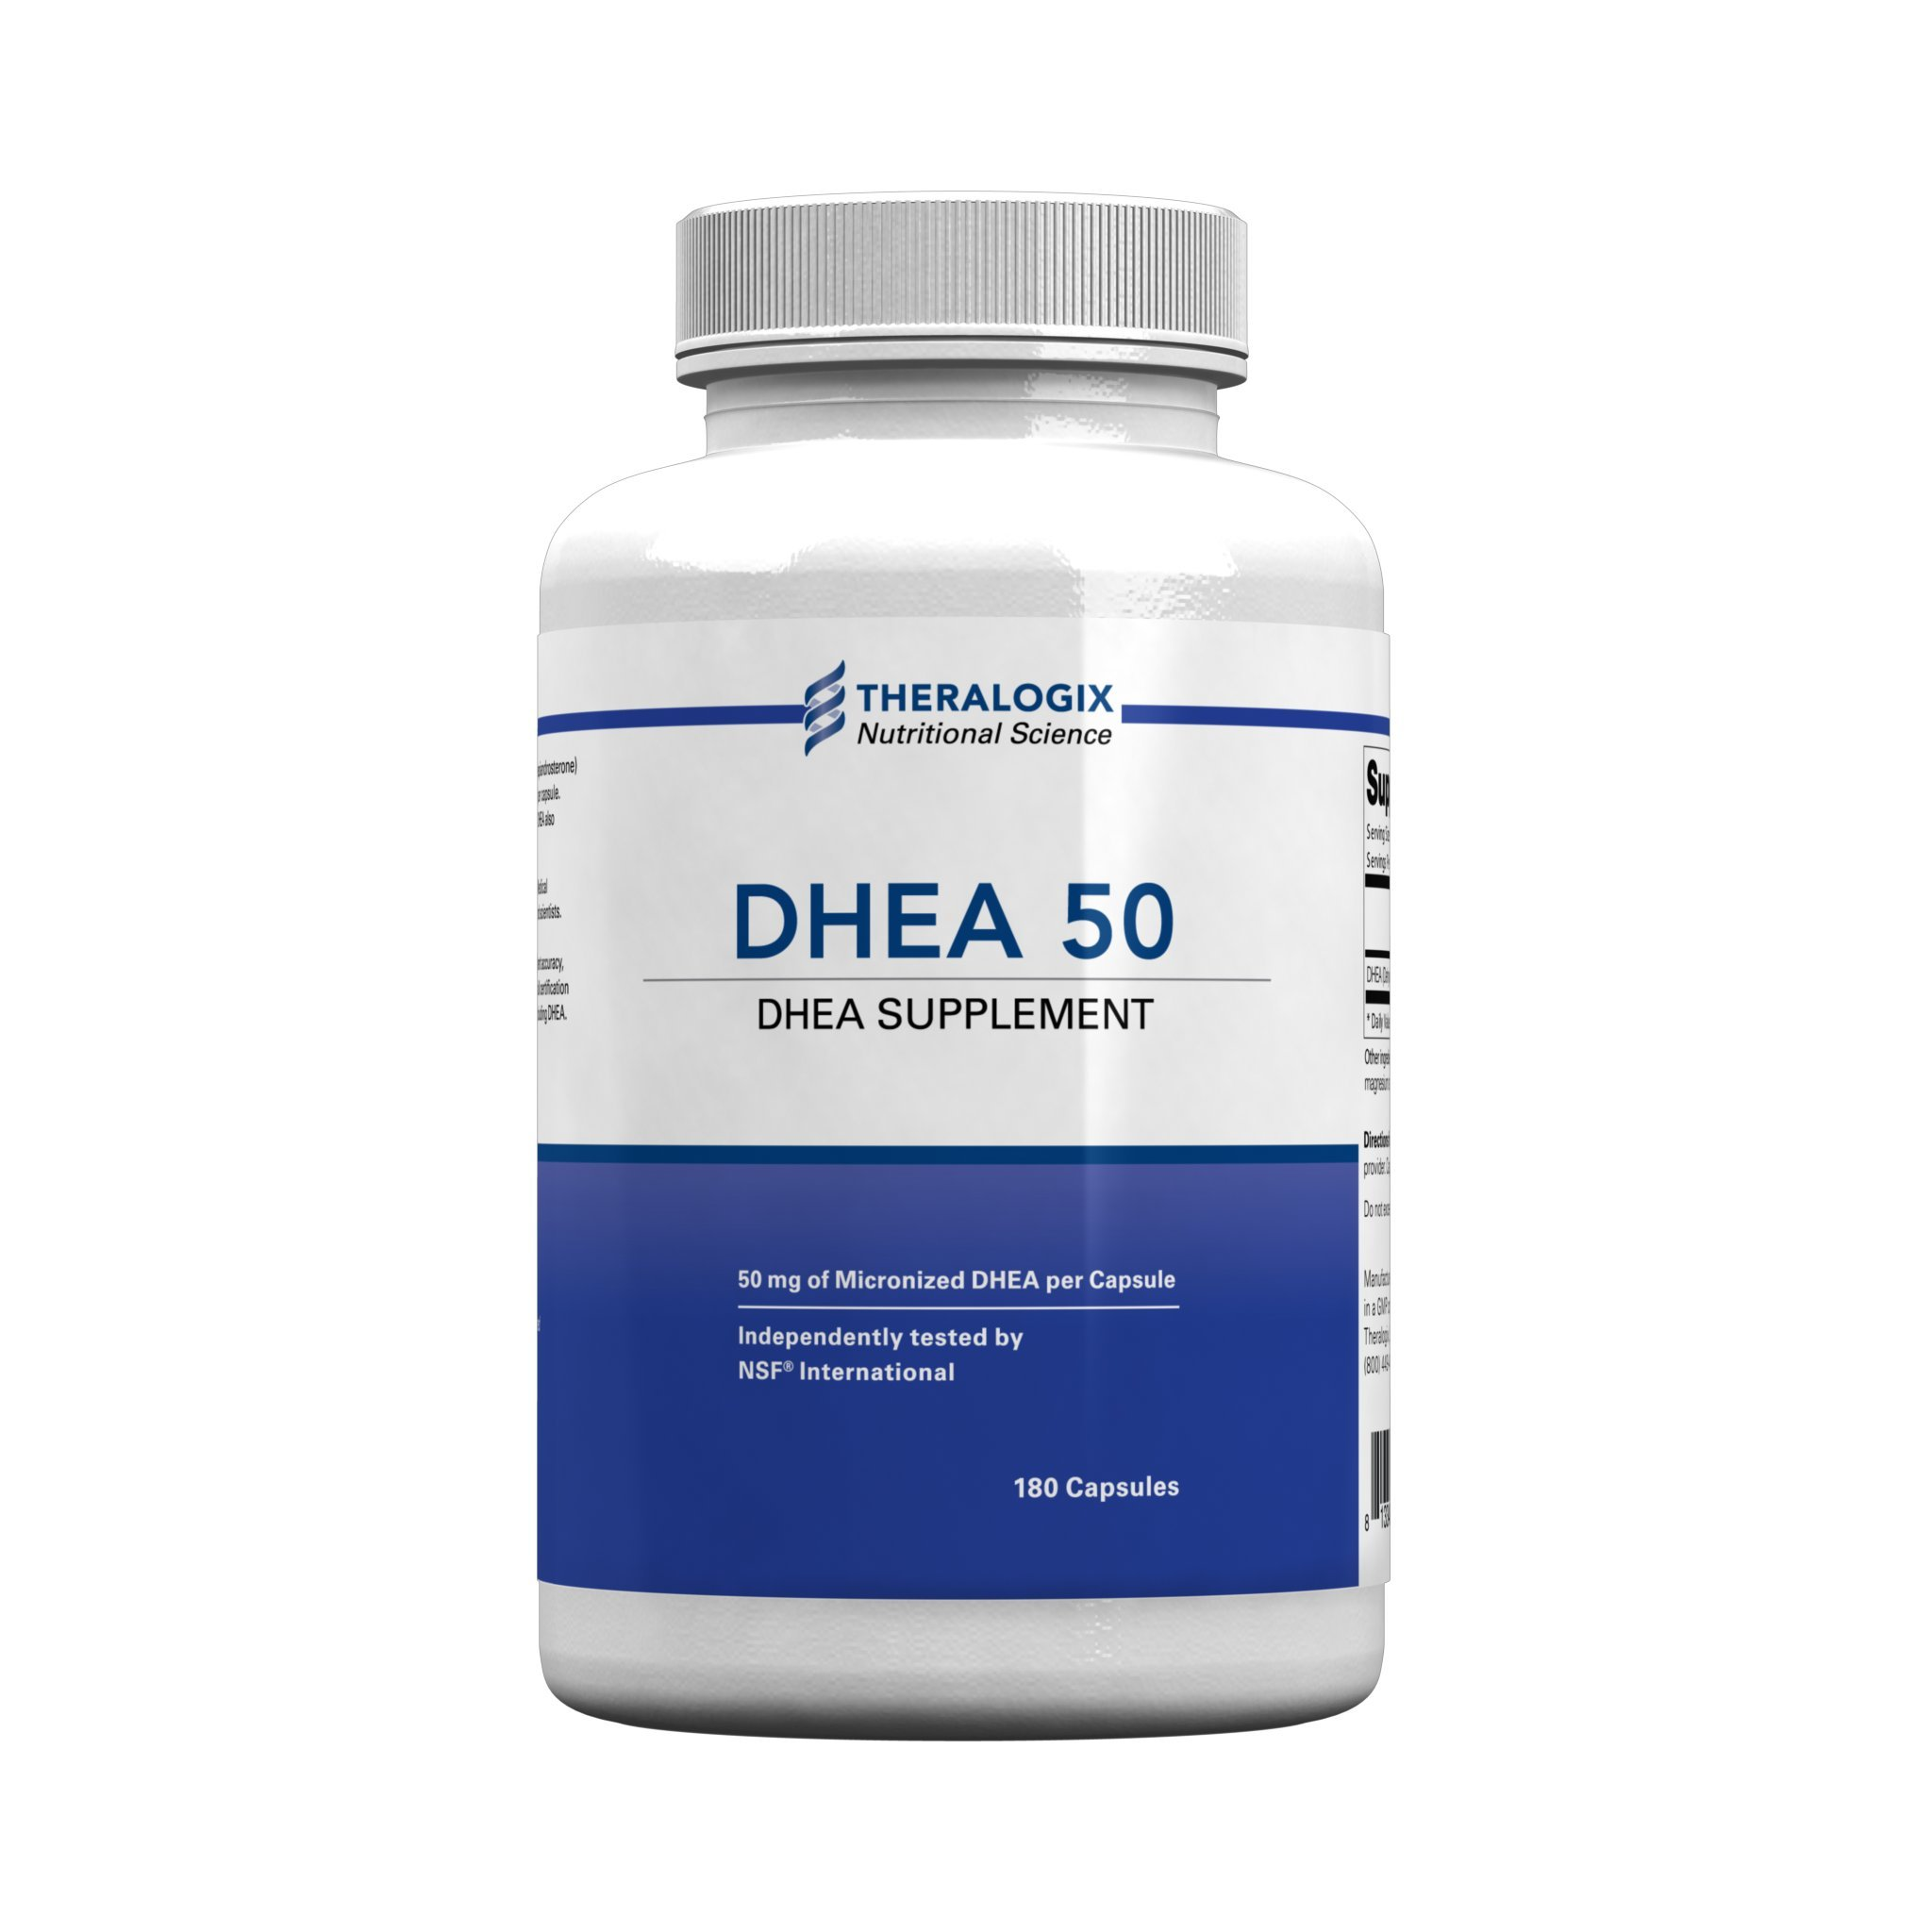 DHEA 50 Nutritional Supplement | Micronized DHEA 50mg | 180 Capsules